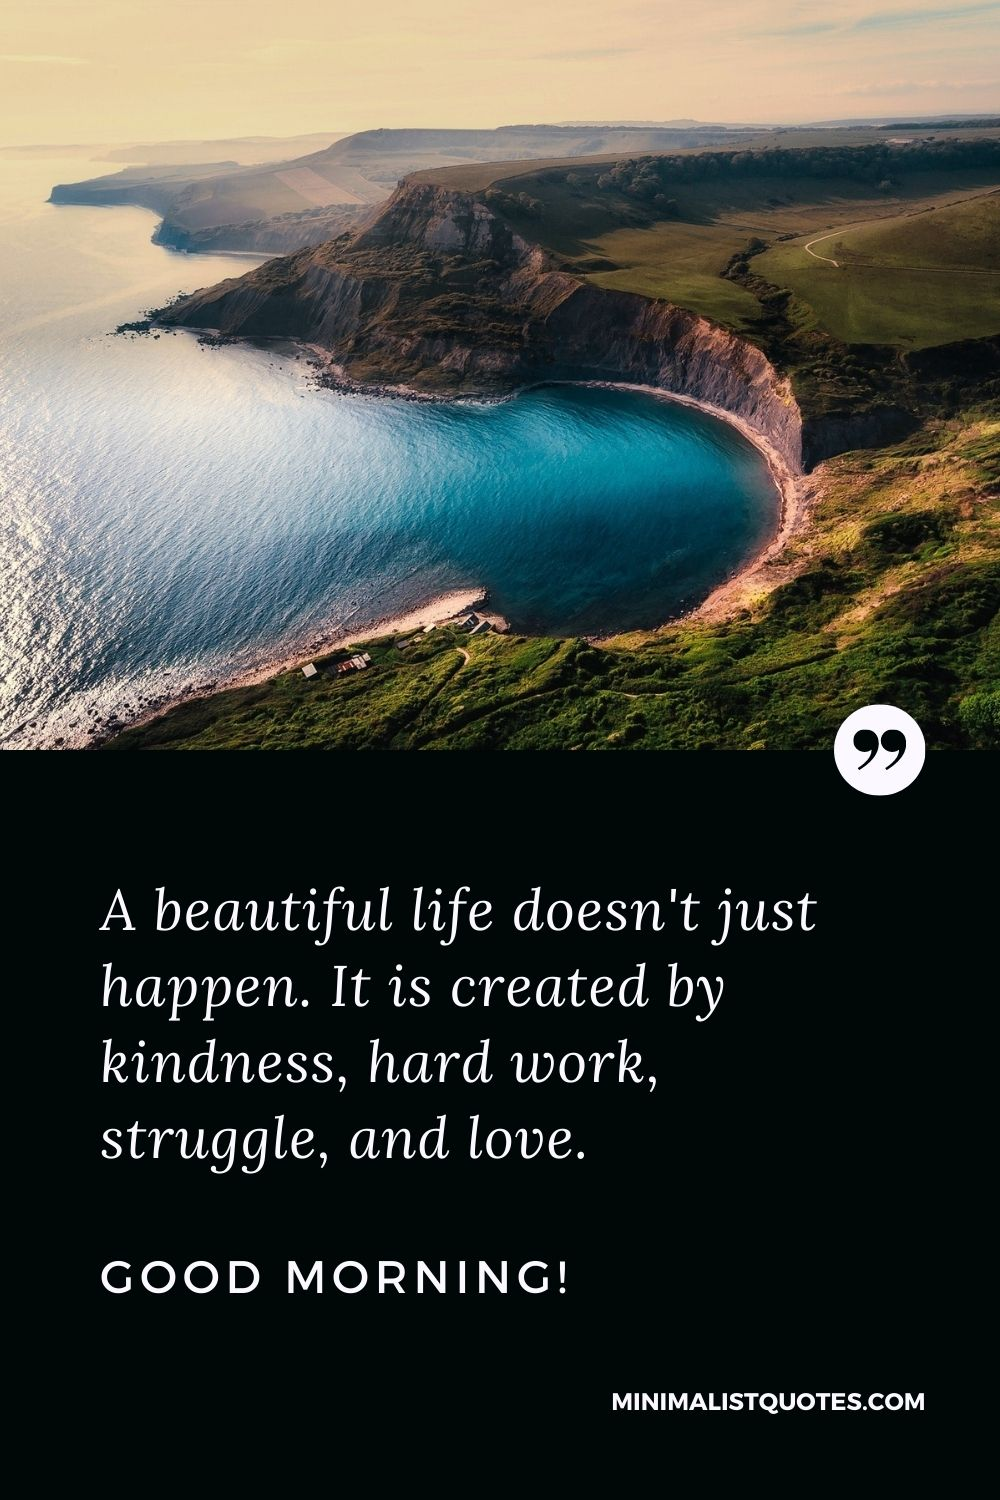 Good morning life quote: A beautiful life doesn't just happen. It is created by kindness, hardwork, struggle, and love. Good Morning!